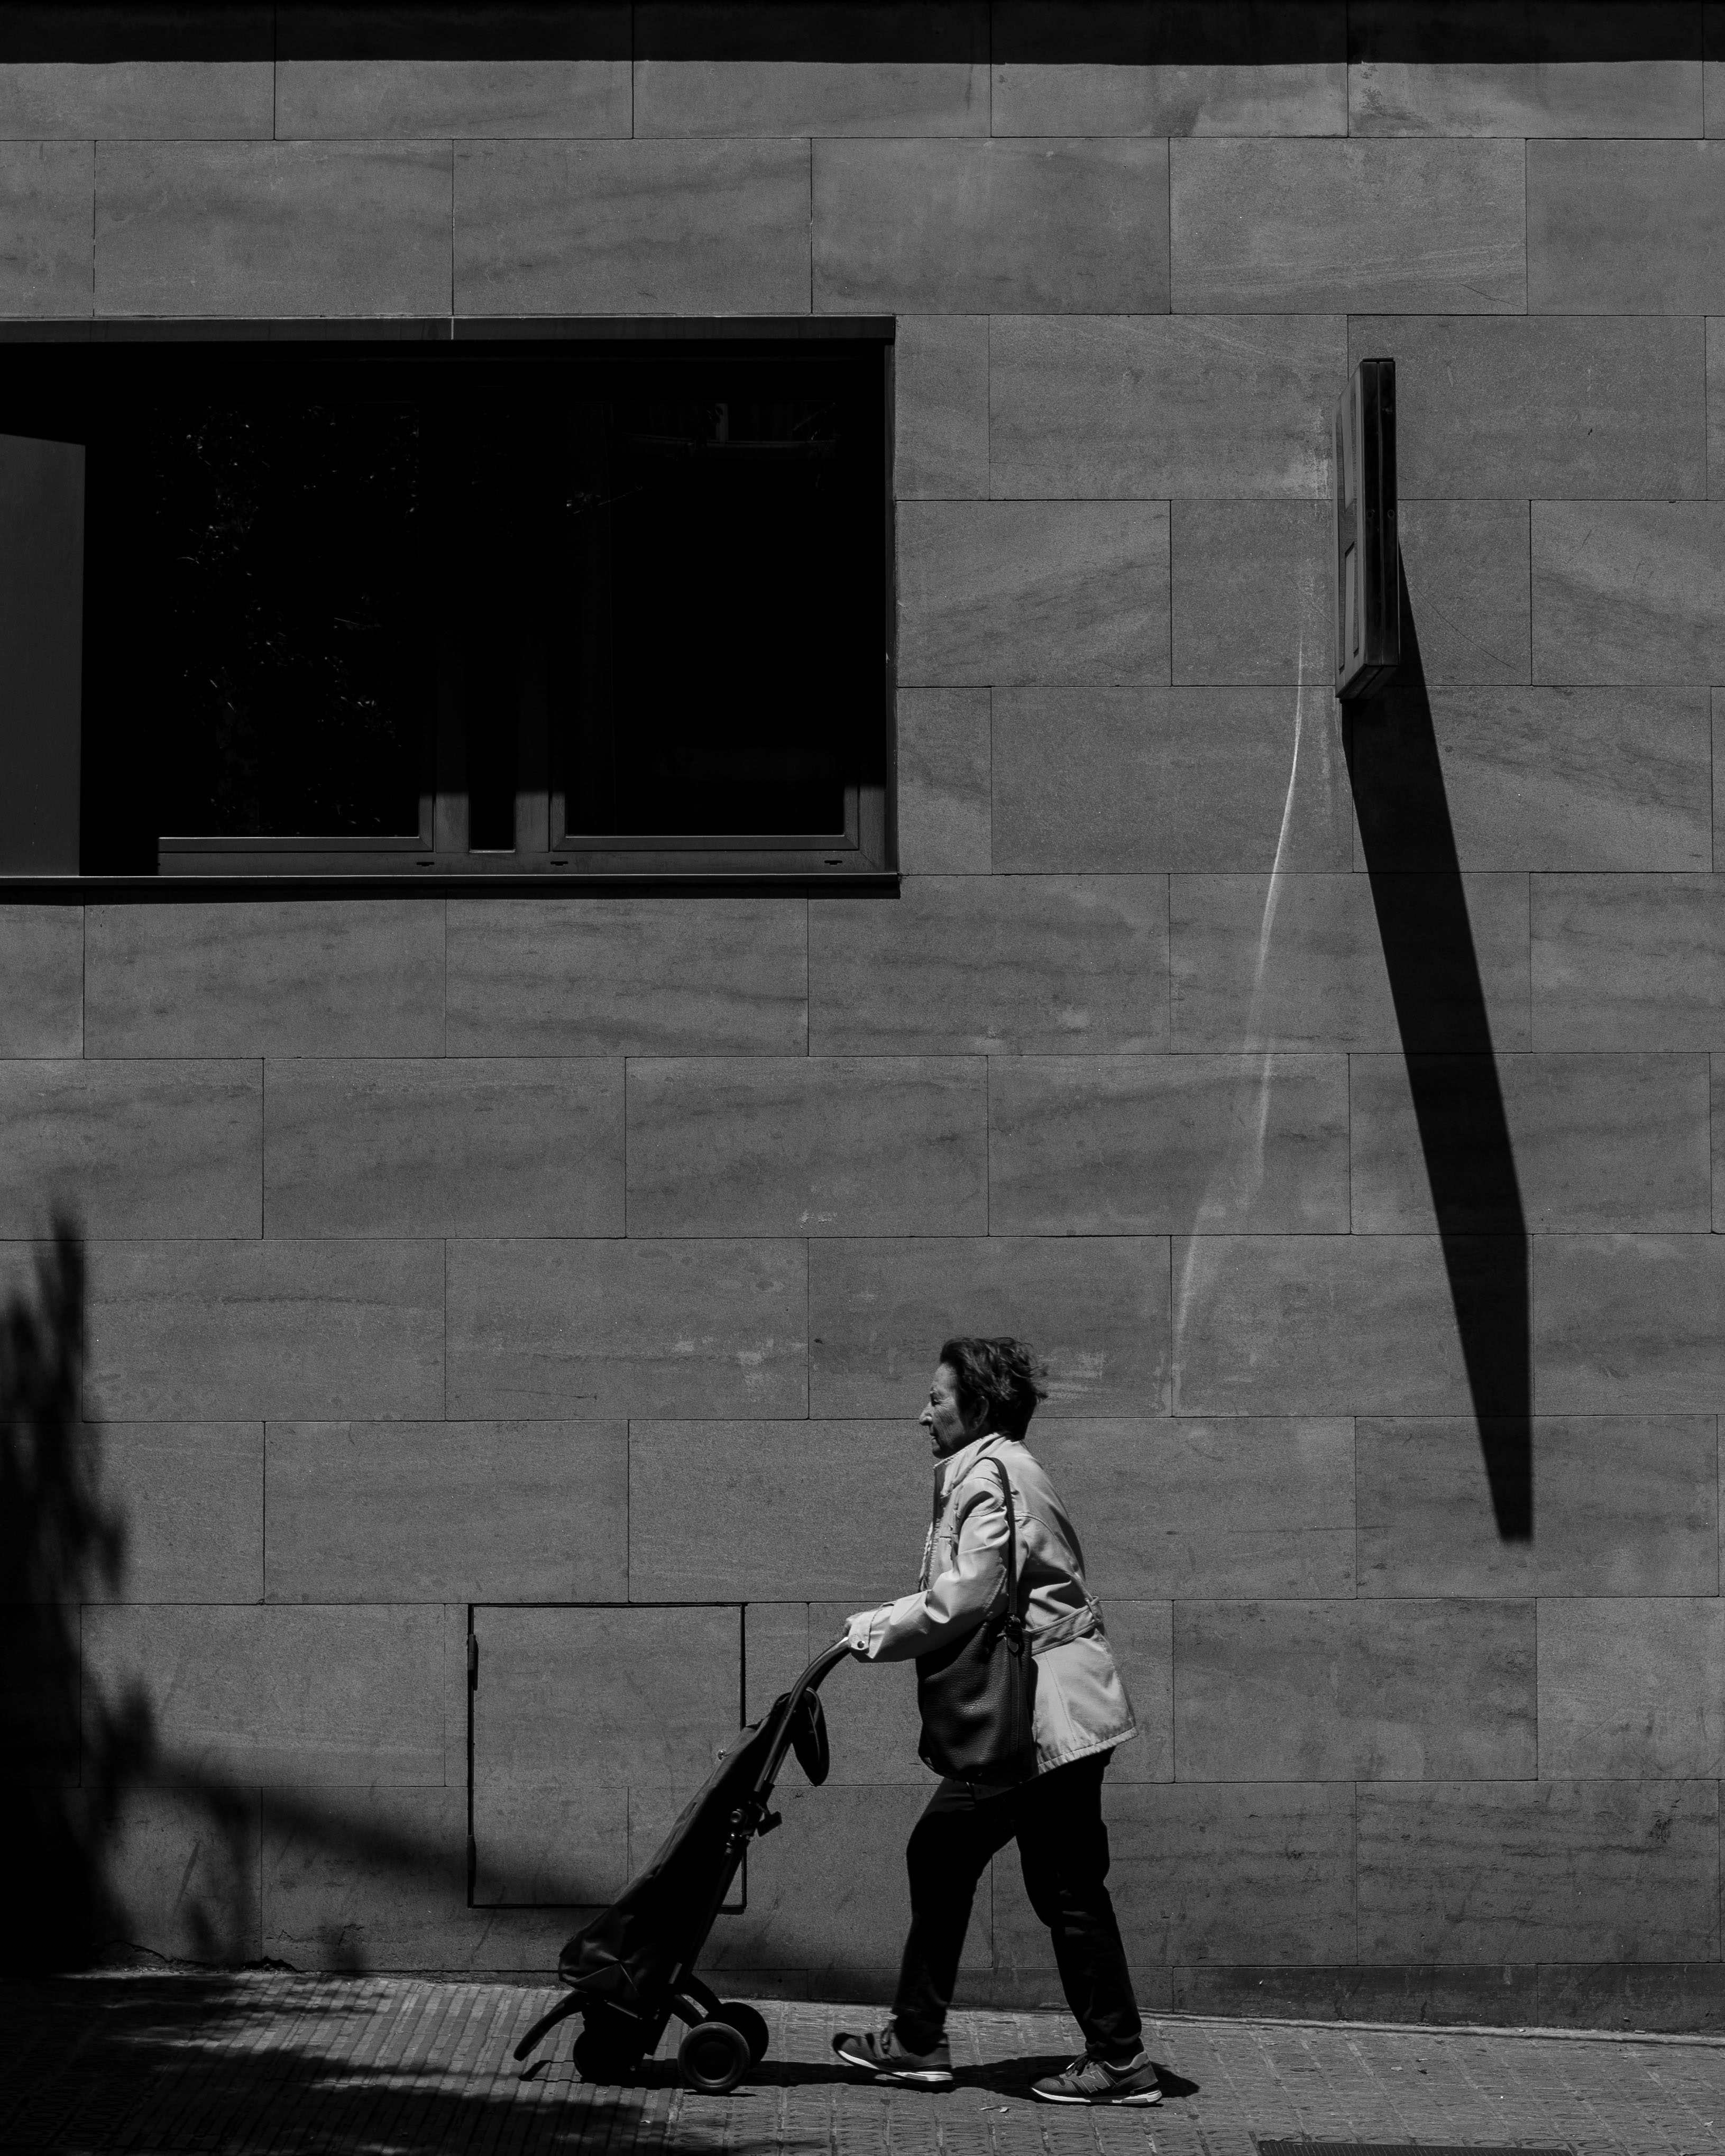 A person in black and white pushes a stroller in front of a wall in Barcelona